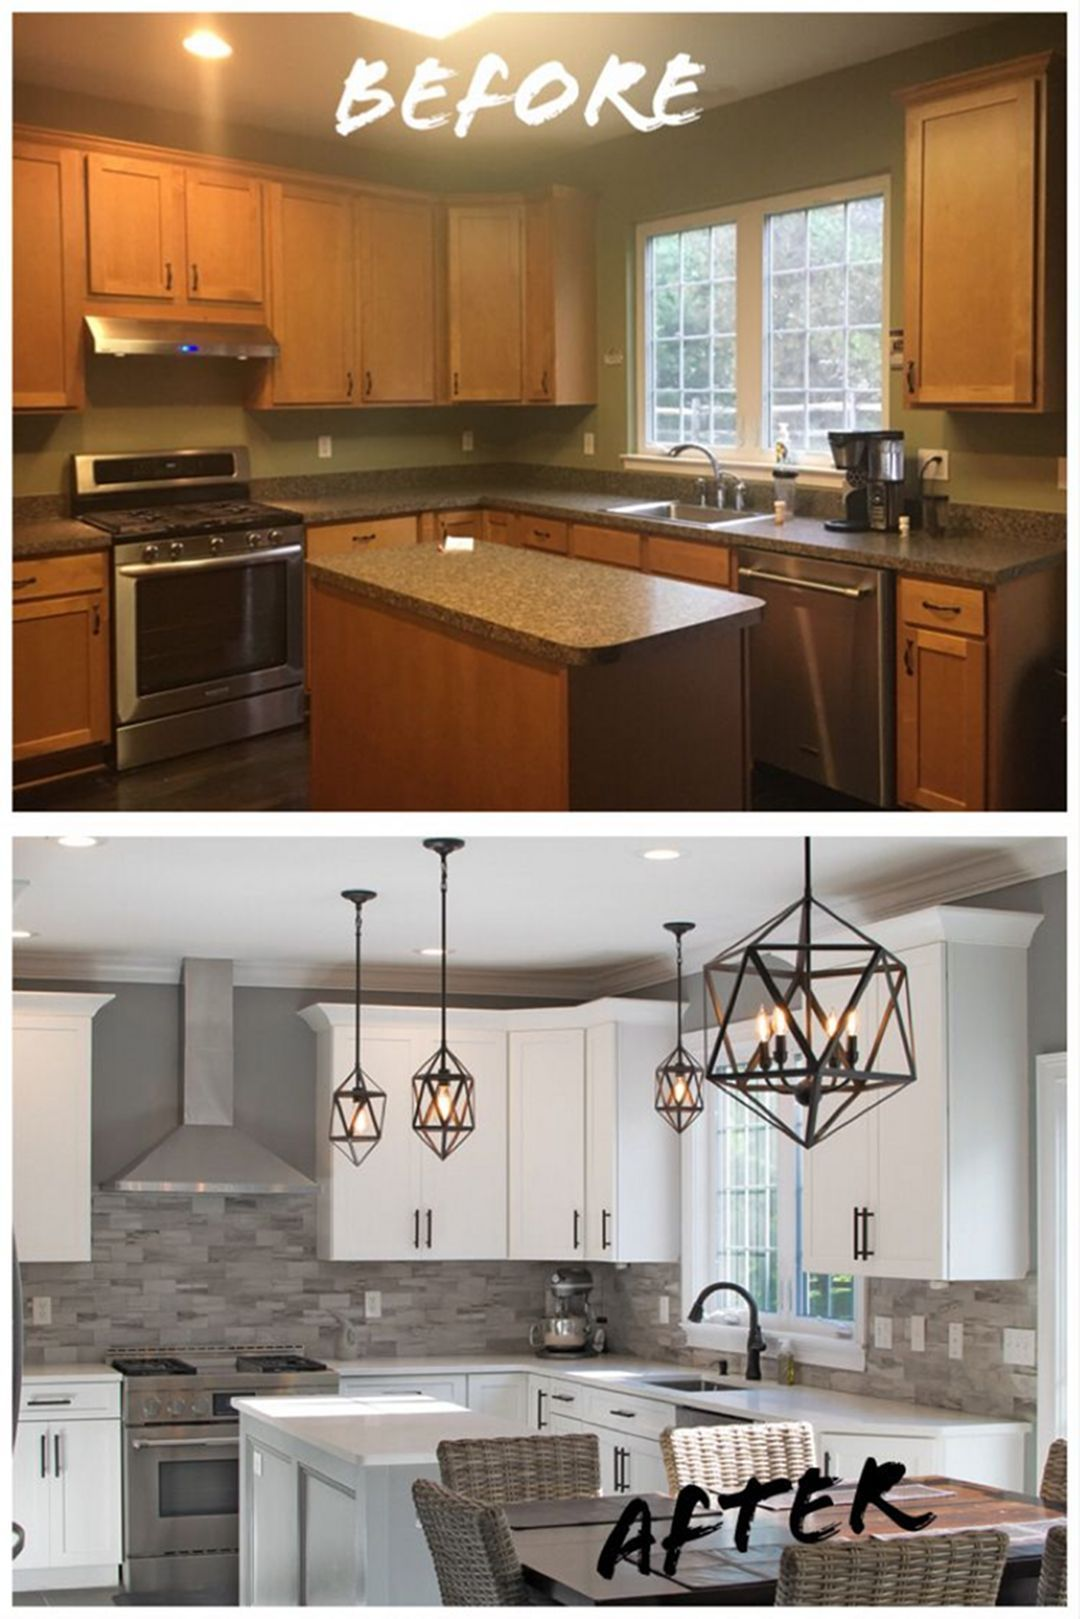 Kitchen Remodel Ideas With Before And After Picture Kitchen Cabinets Makeover Kitchen Design Kitchen Renovation